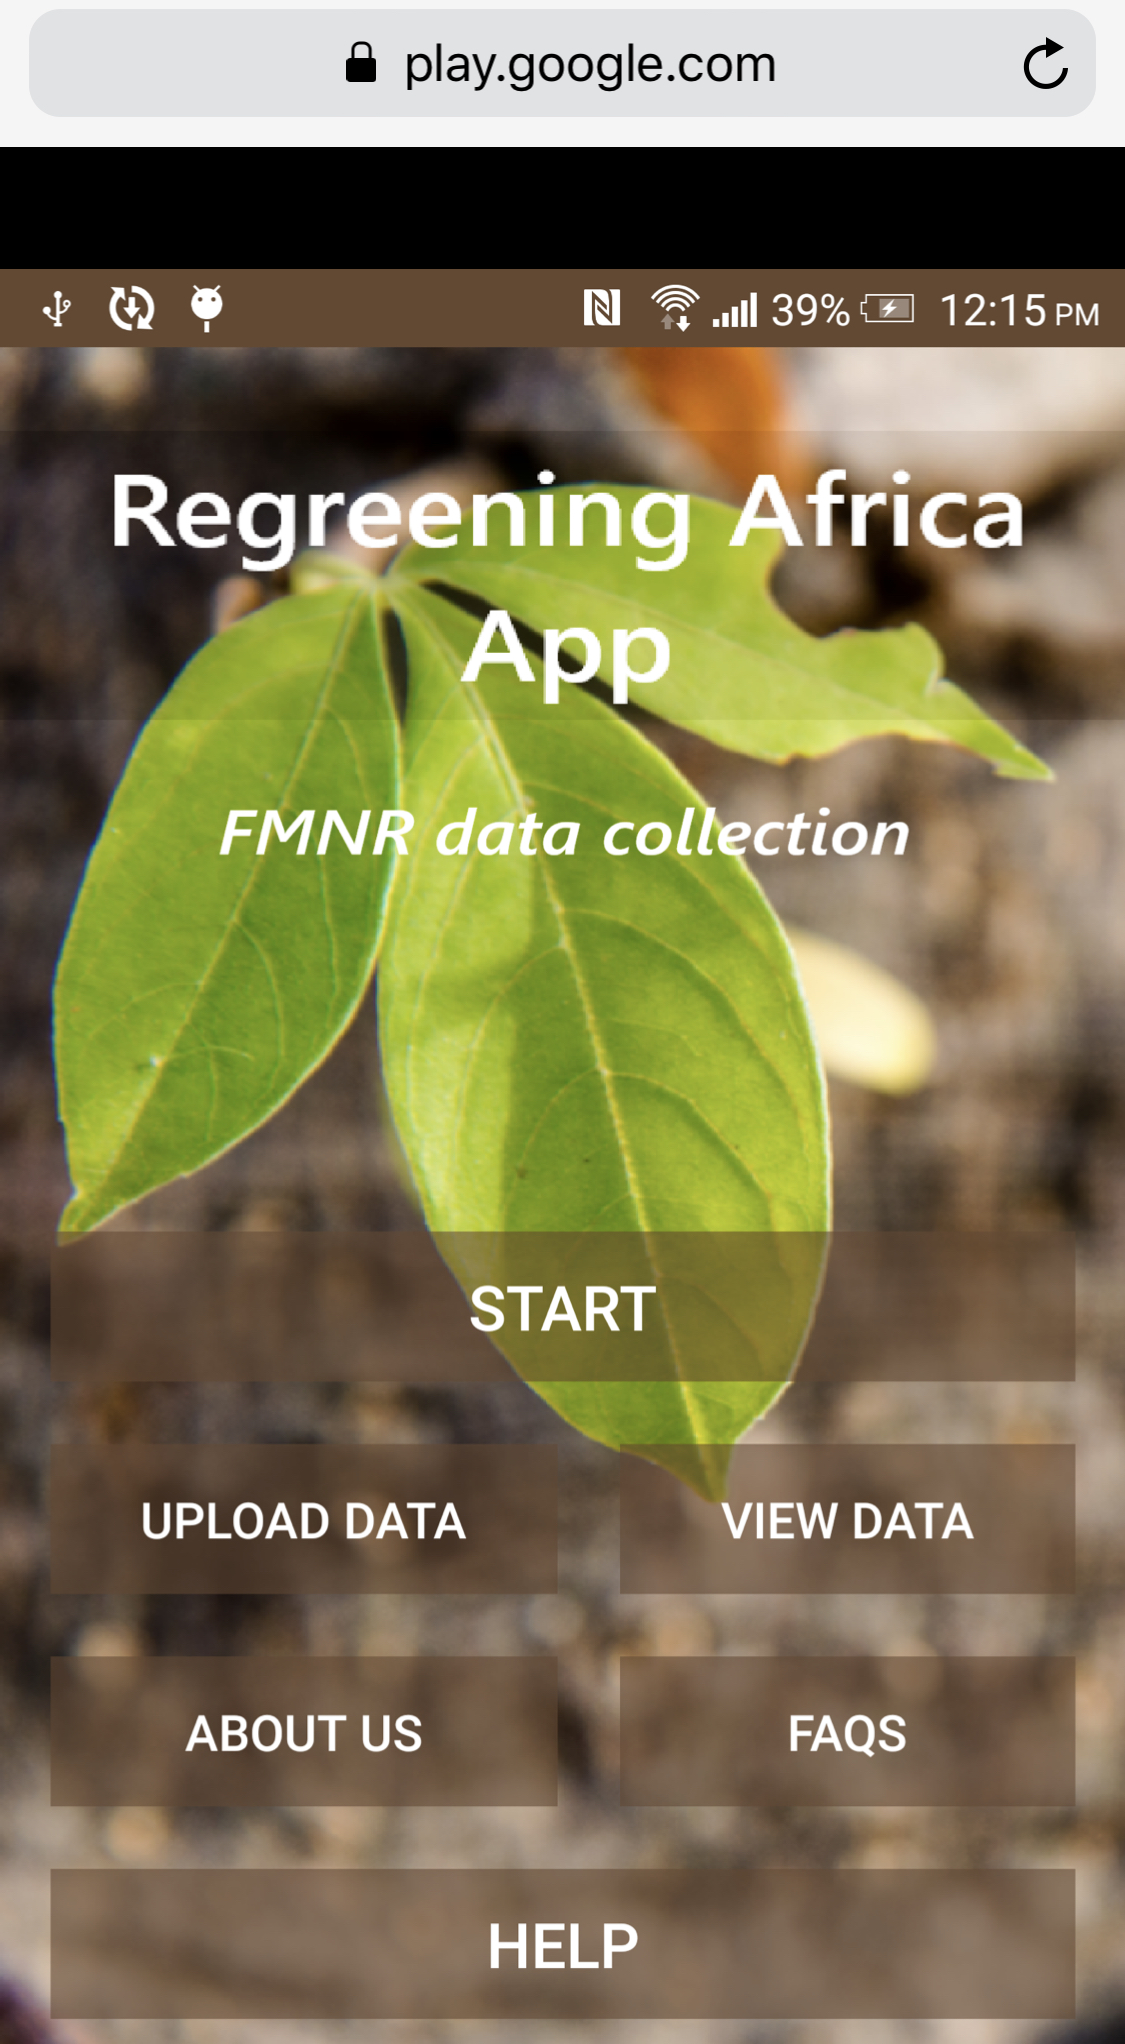 Beta version of Regreening Africa App